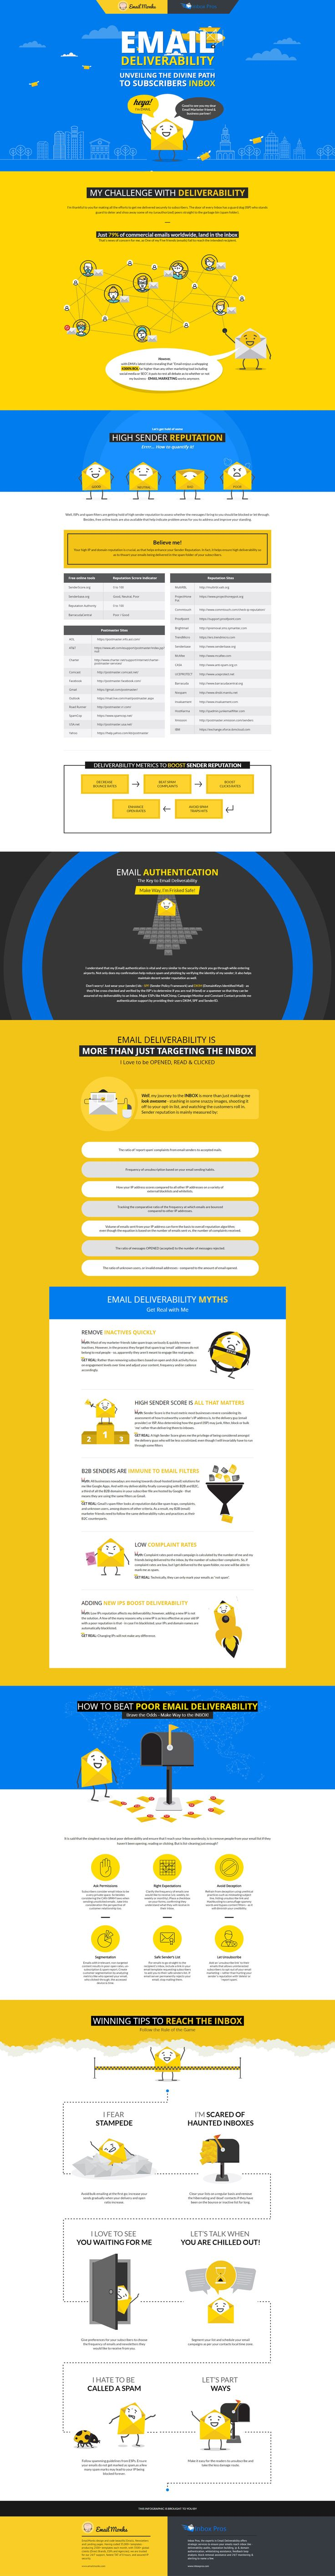 Expert Tips for Receiving Better Email Deliverability Rates [Infographic] -- Research shows that email delivers a stunning ROI of 4300%, which is much higher than any other marketing tactic, including SEO and social media. But, unfortunately, data also reveals that only 79% of commercial emails actually end up in the inbox.